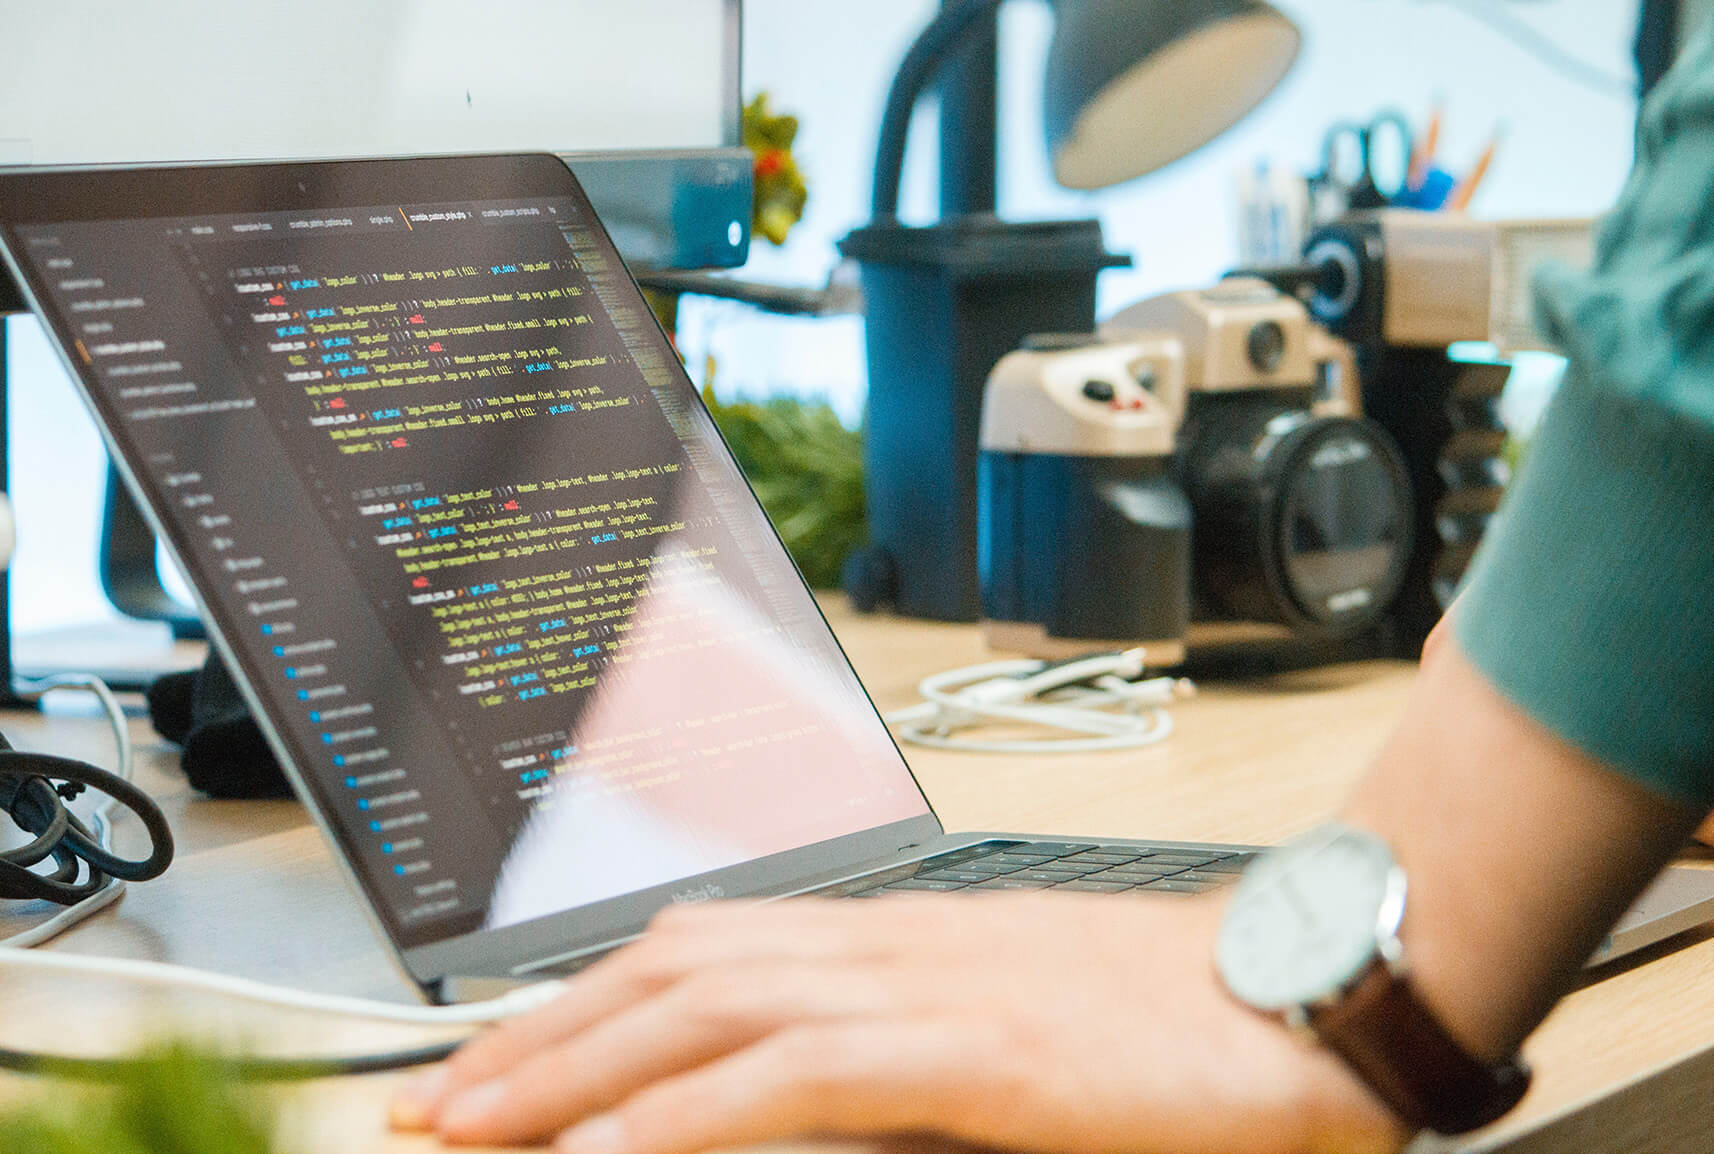 New skills to learn in self-isolation - Coding